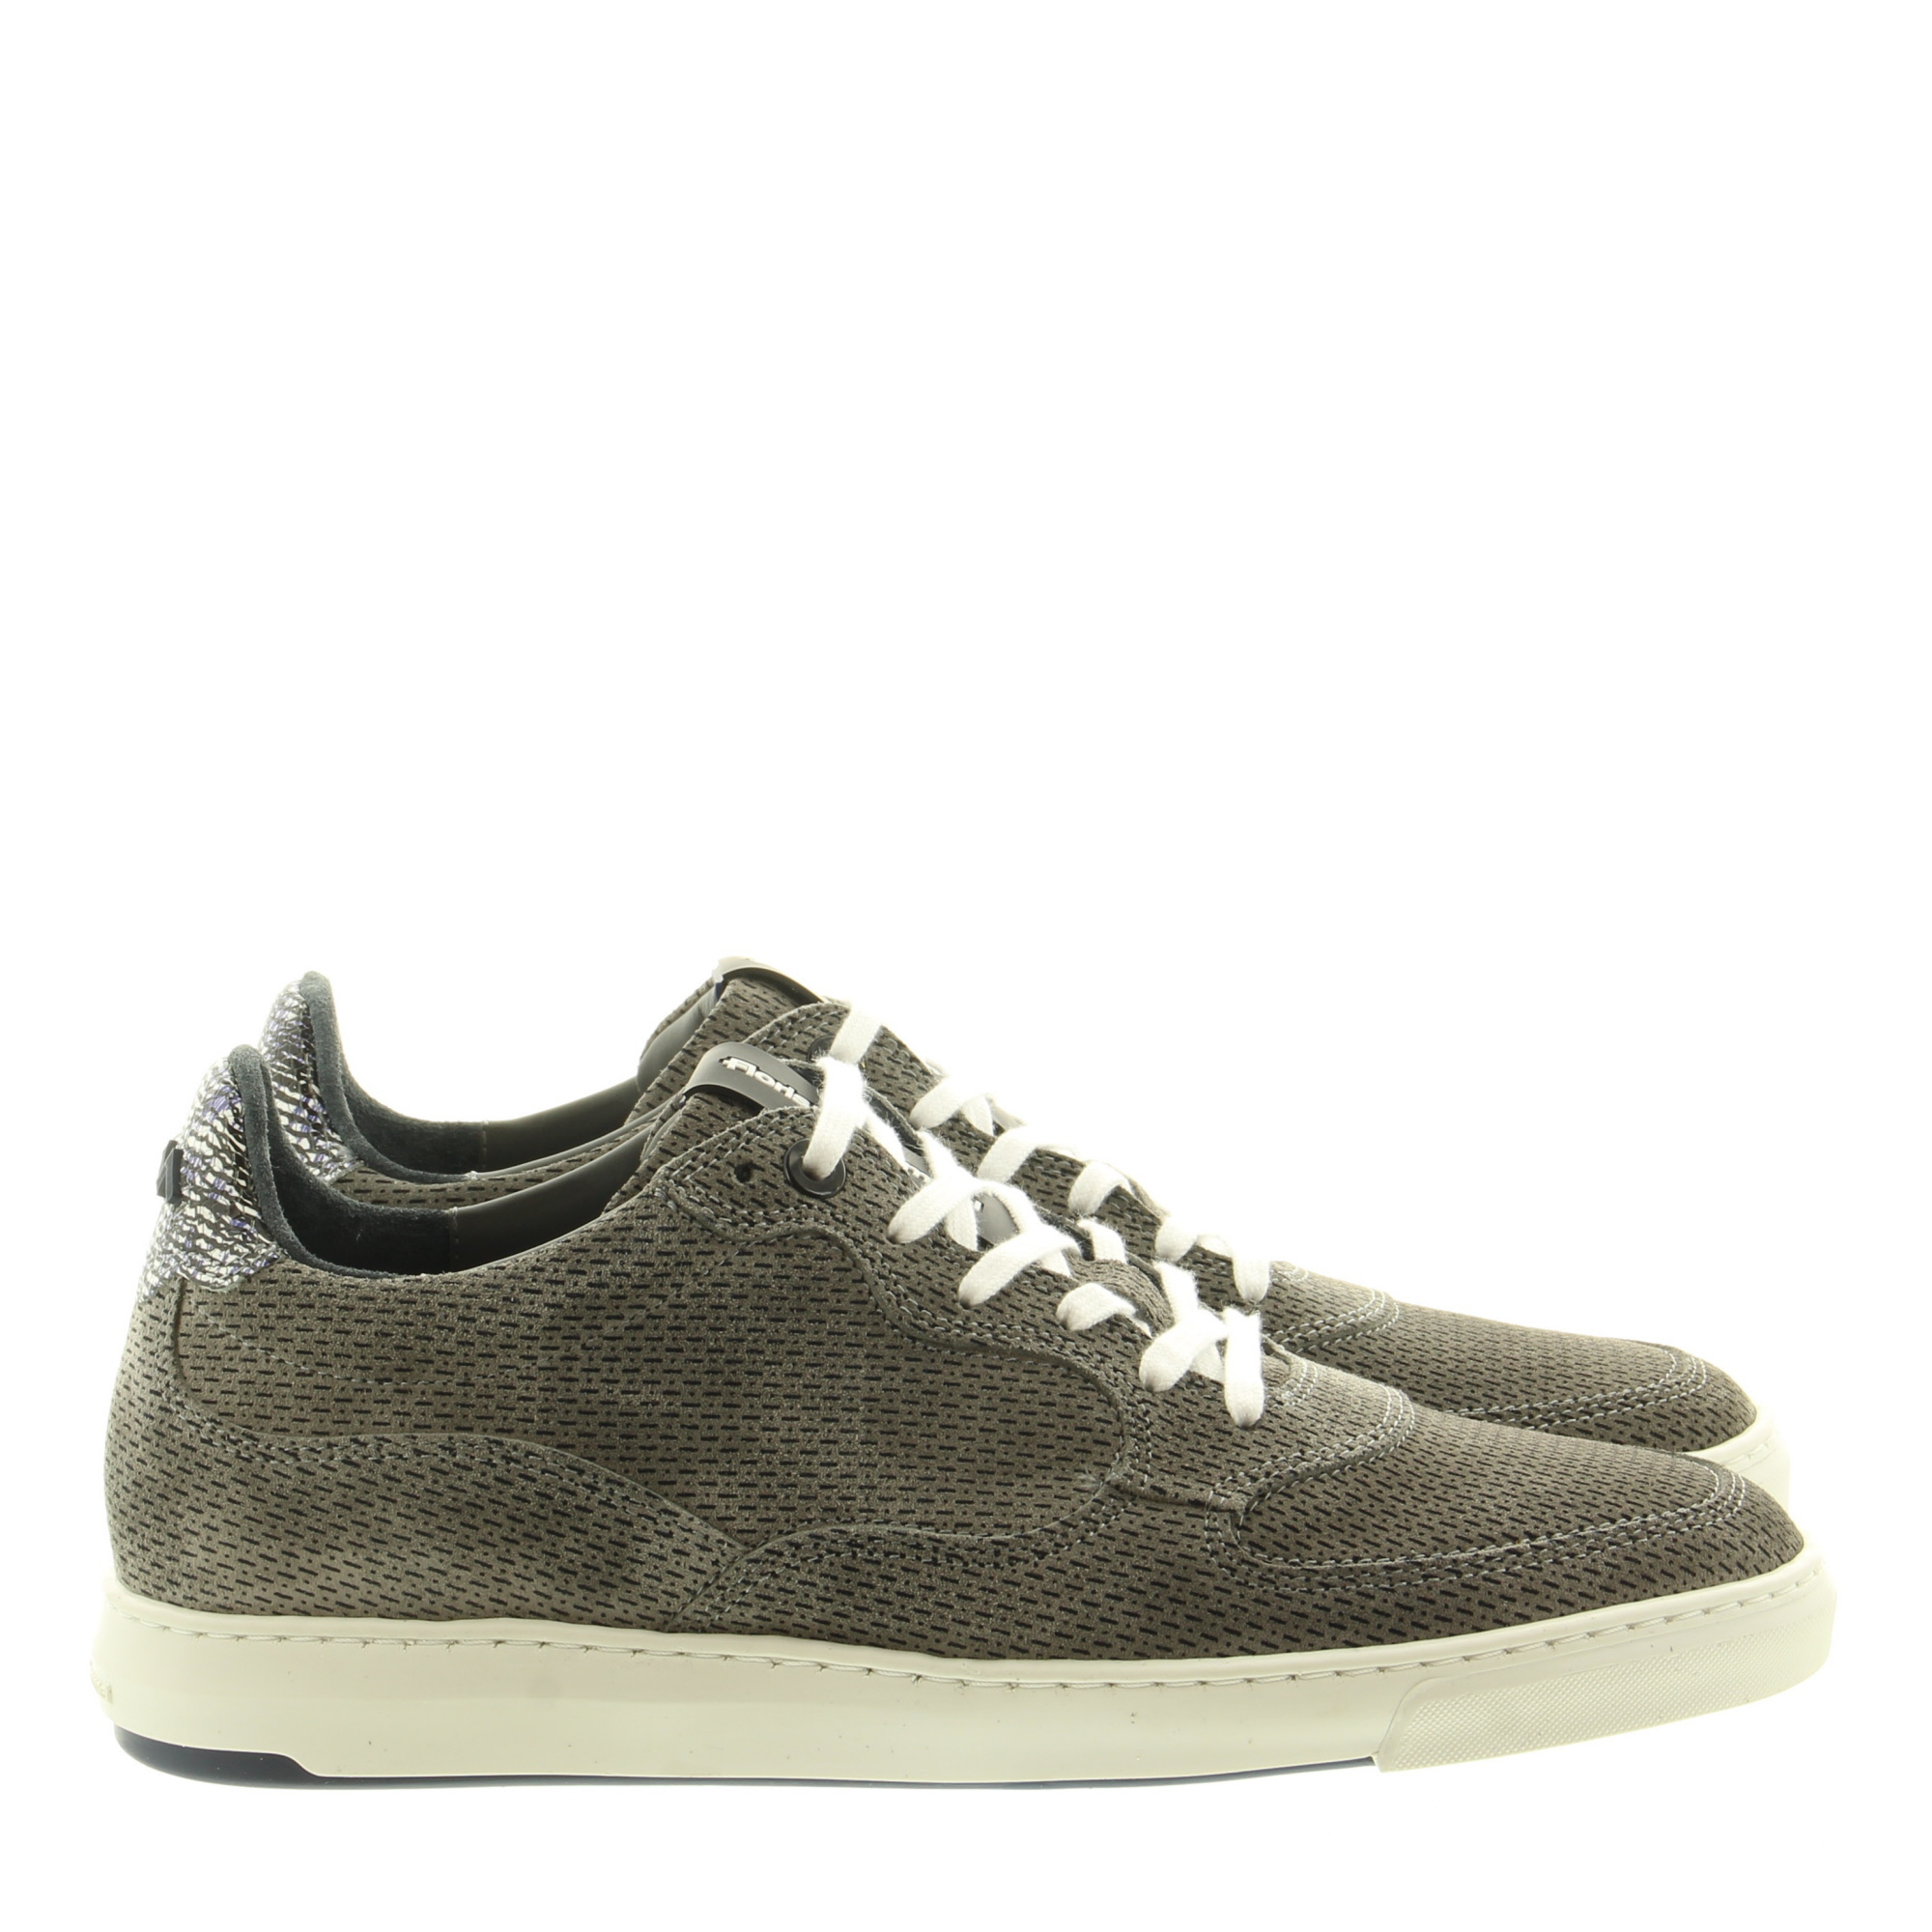 Floris van Bommel 16321 02 Grey